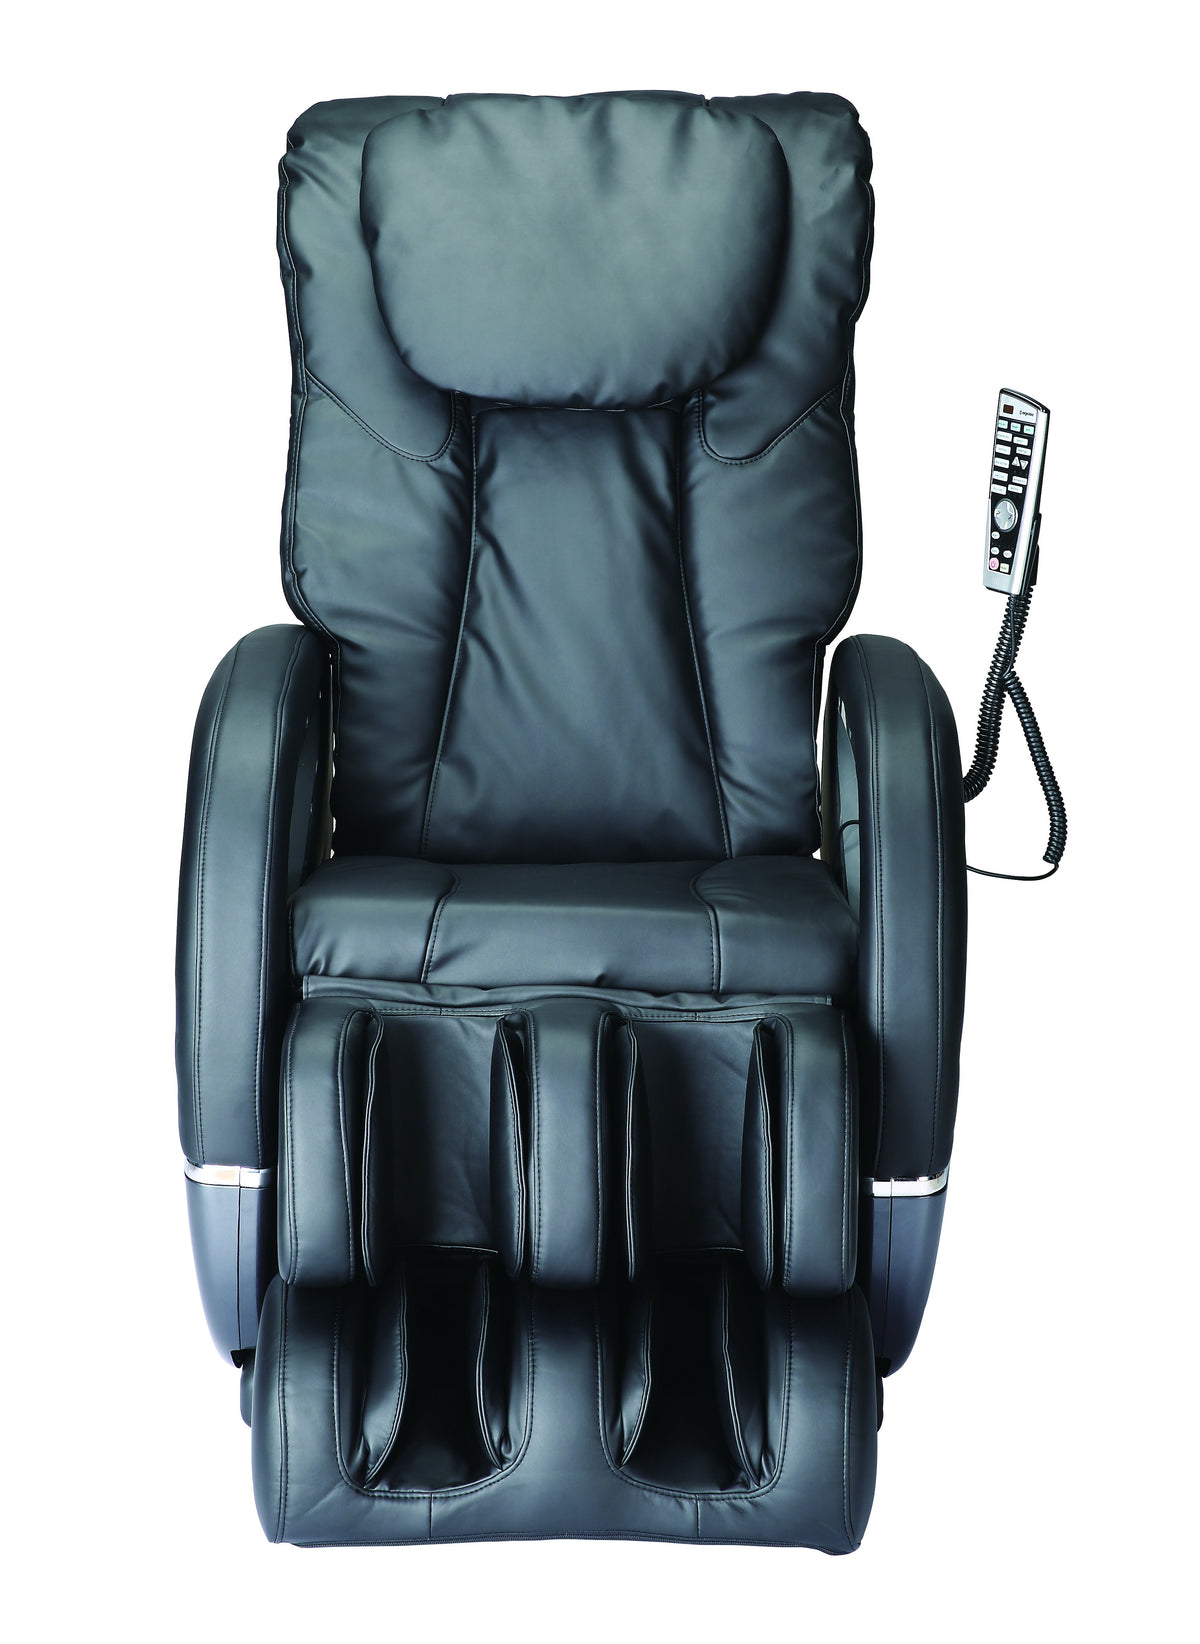 Cozzia Massage Chair Front Angle View